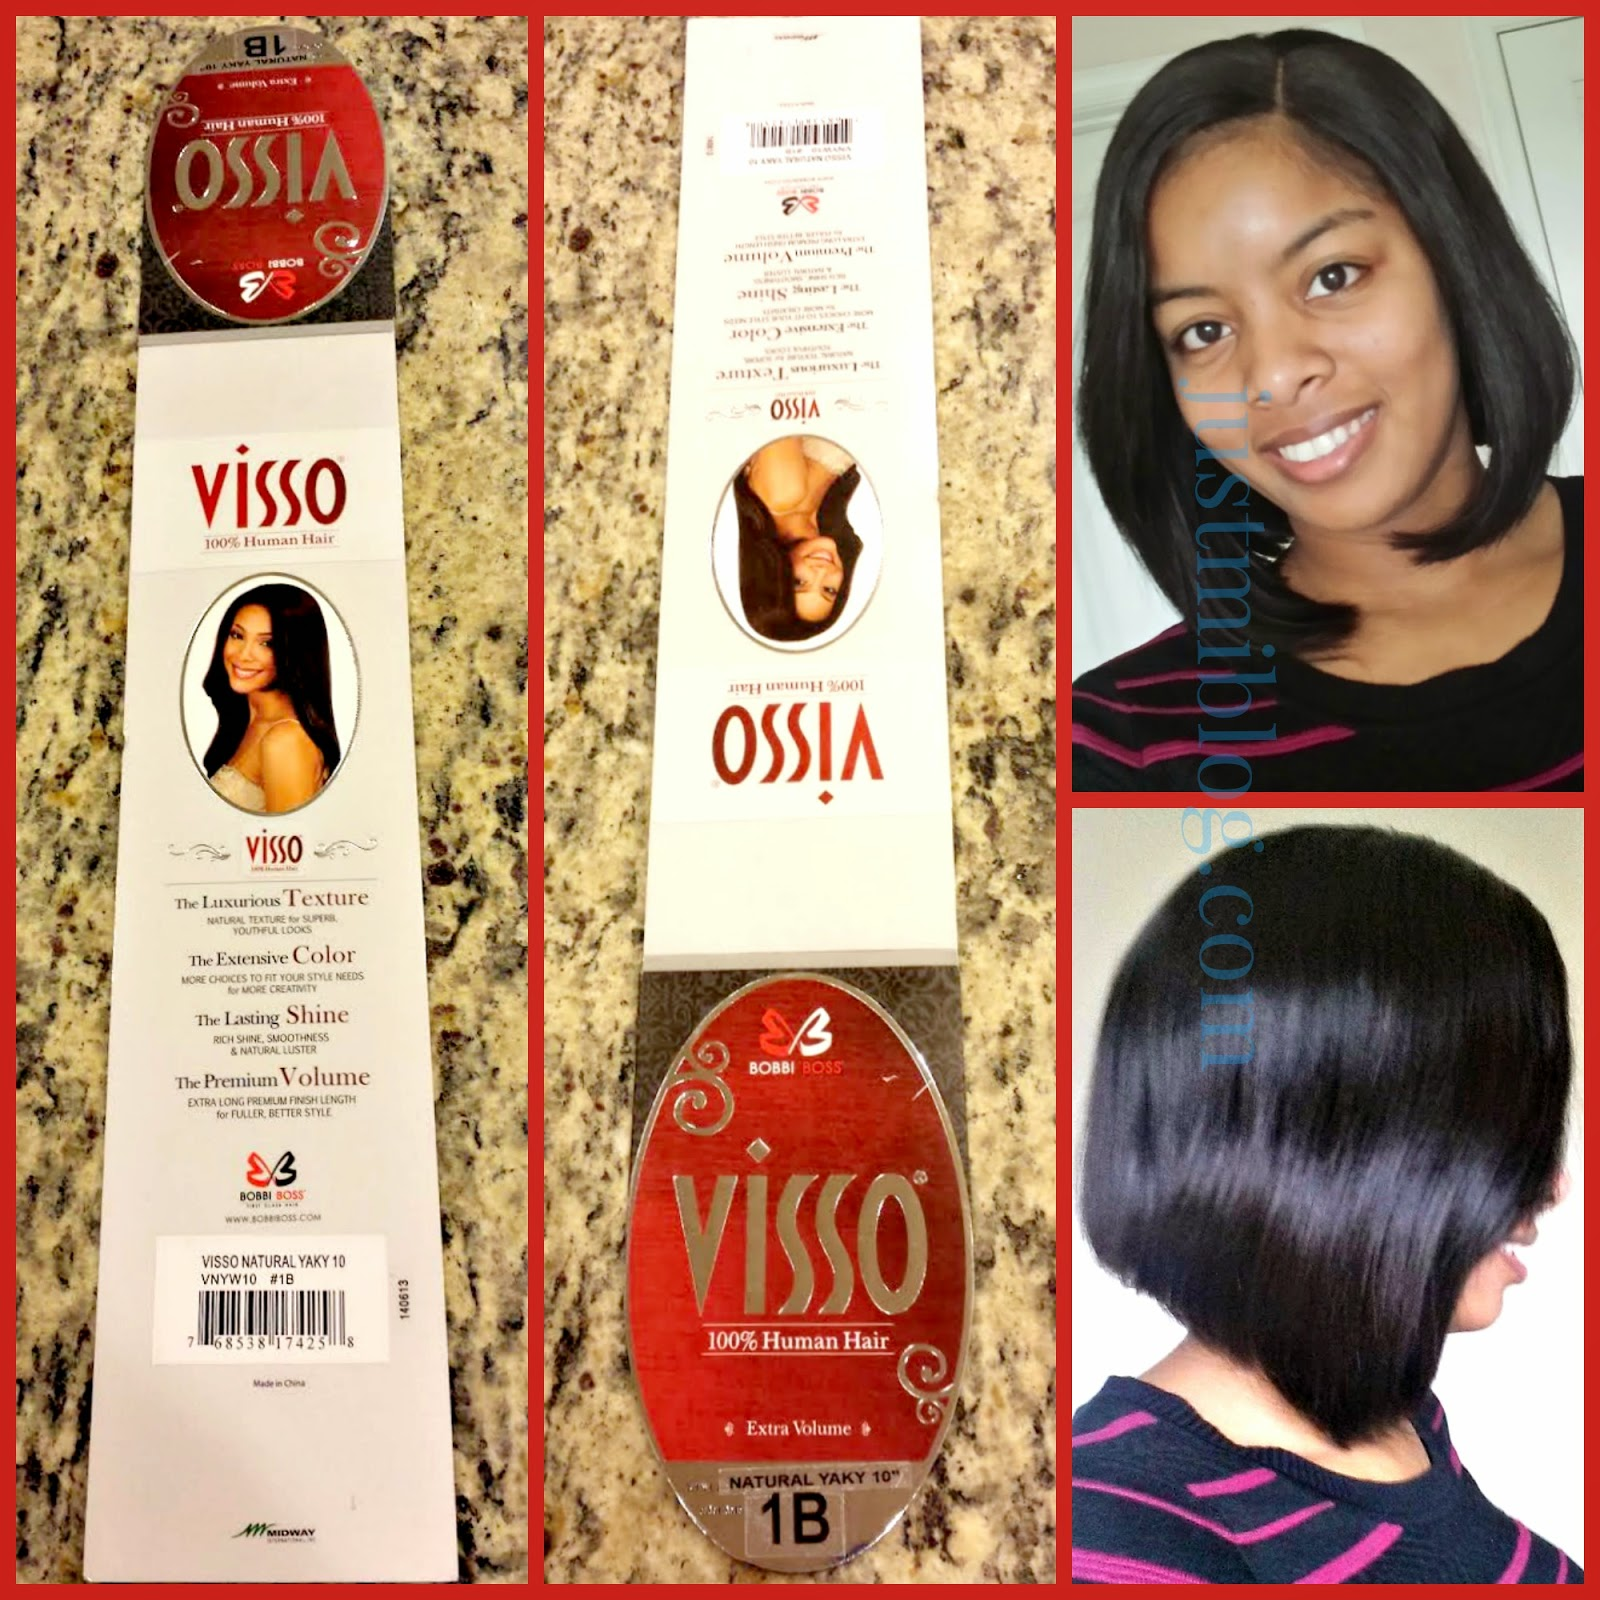 Full sew-in with lace closure and the Visso 100% human hair used